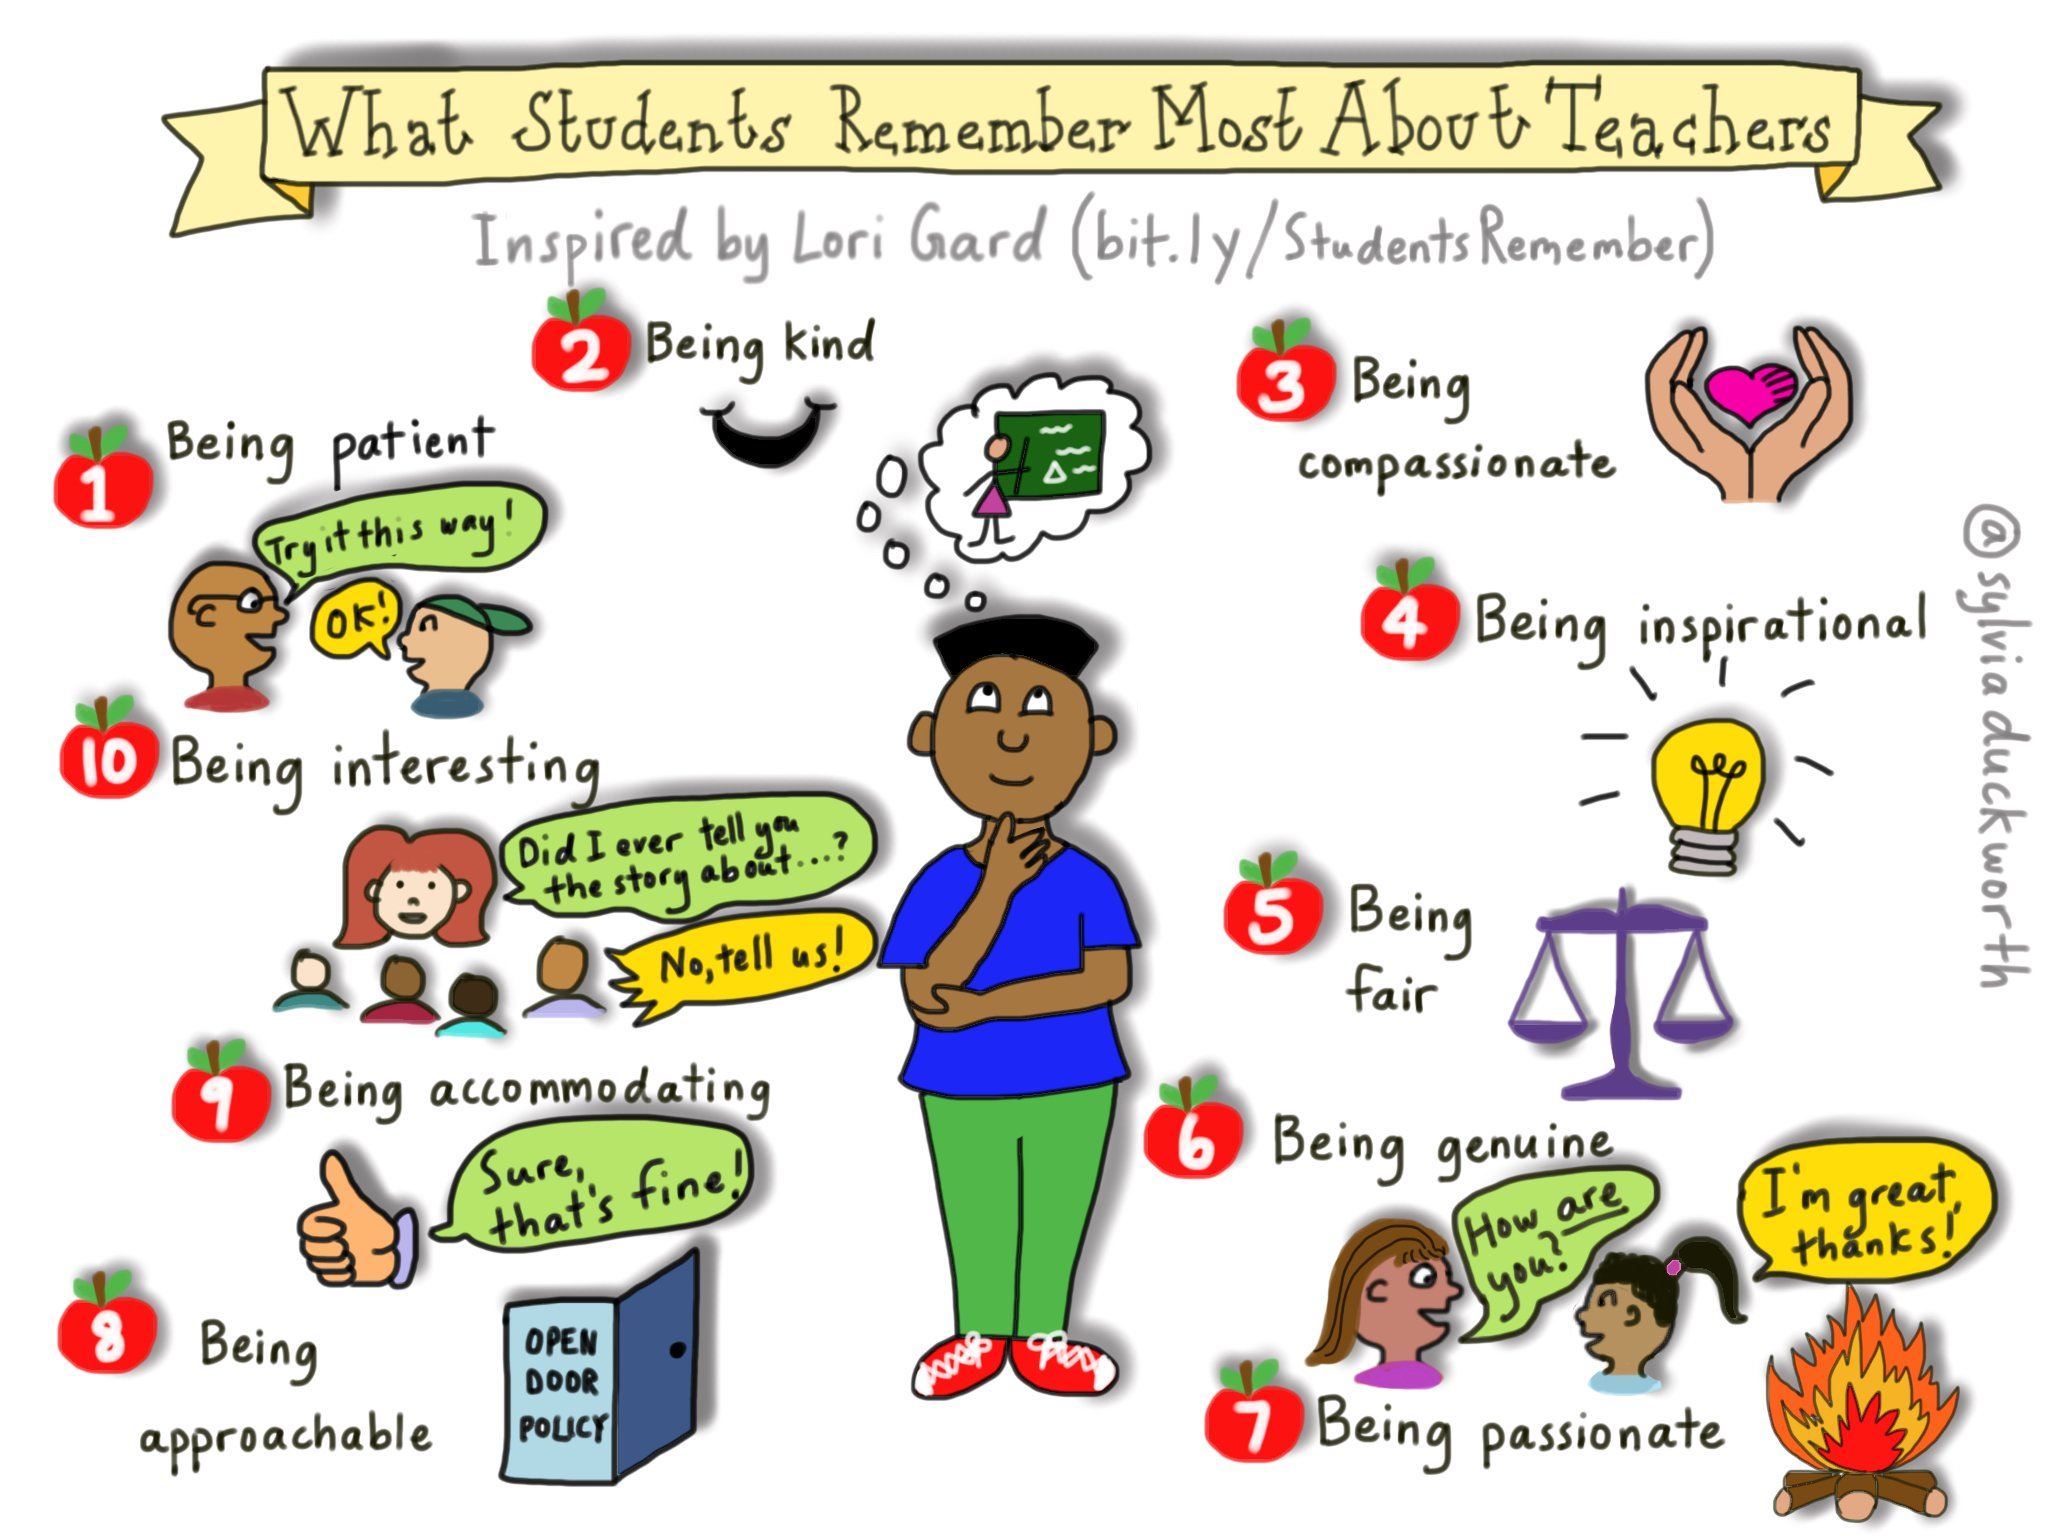 What will your students remember about you? #sketchnote via @sylviaduckworth @lori_gard #edchat #teaching #relationships https://t.co/HdDhvgkKqH